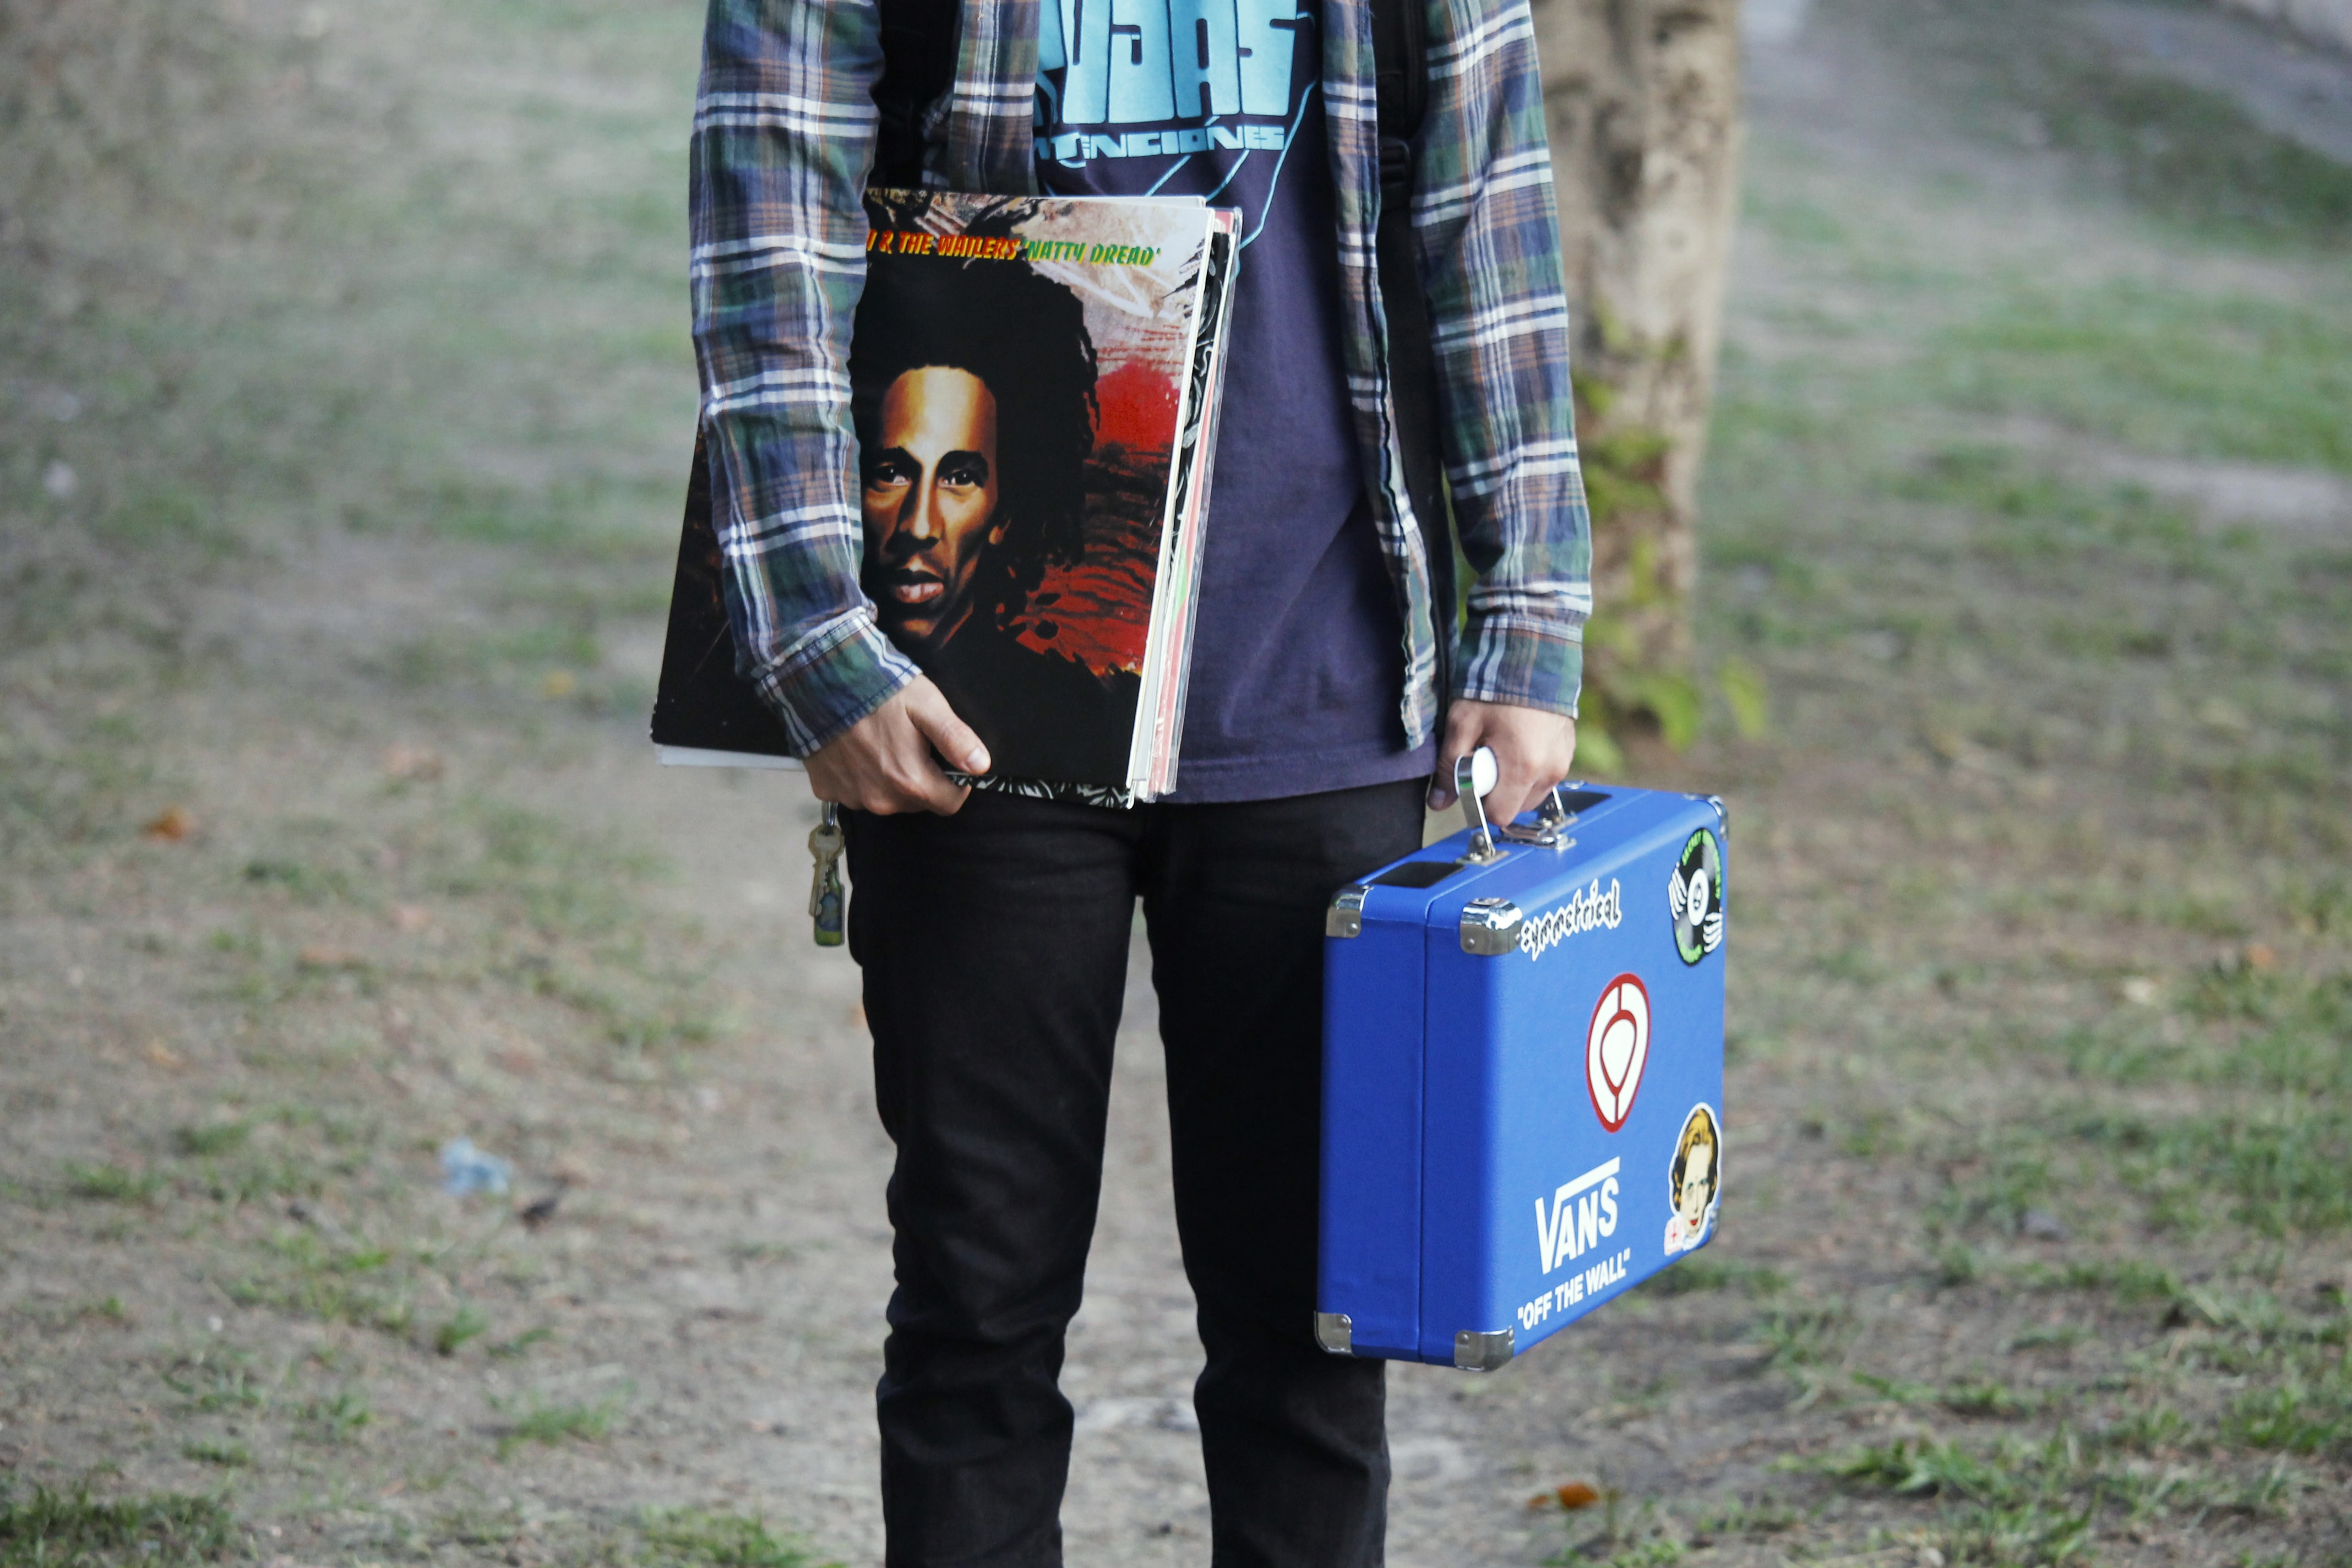 A person carrying a blue case and stack of records, including one by Bob Marley